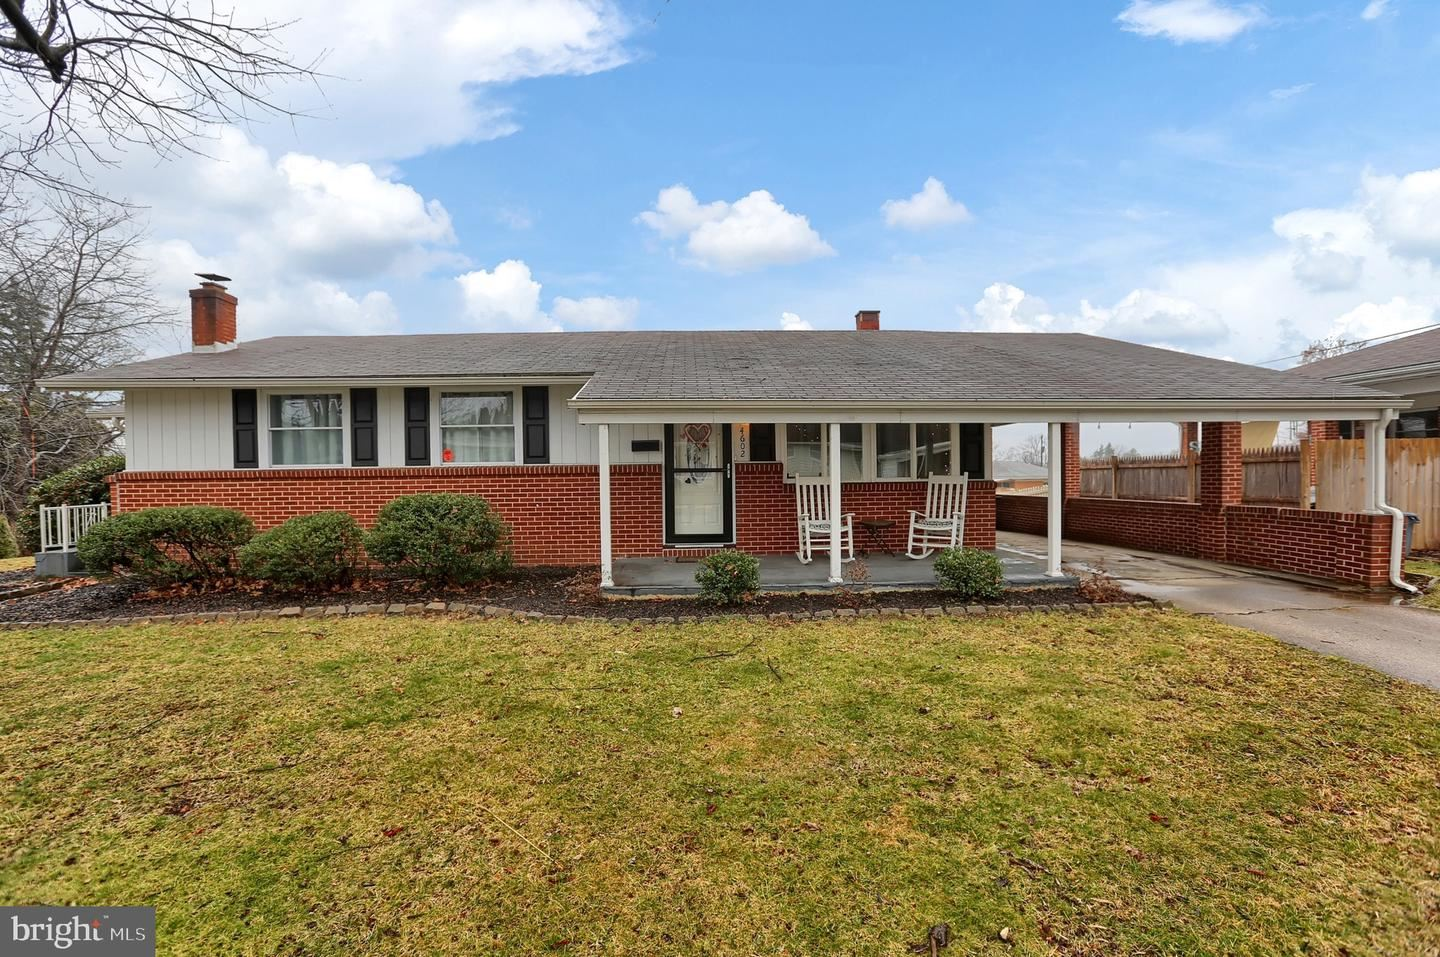 Photo of 4602 N CLEARVIEW DR, CAMP HILL, PA 17011 (MLS # PACB121542)